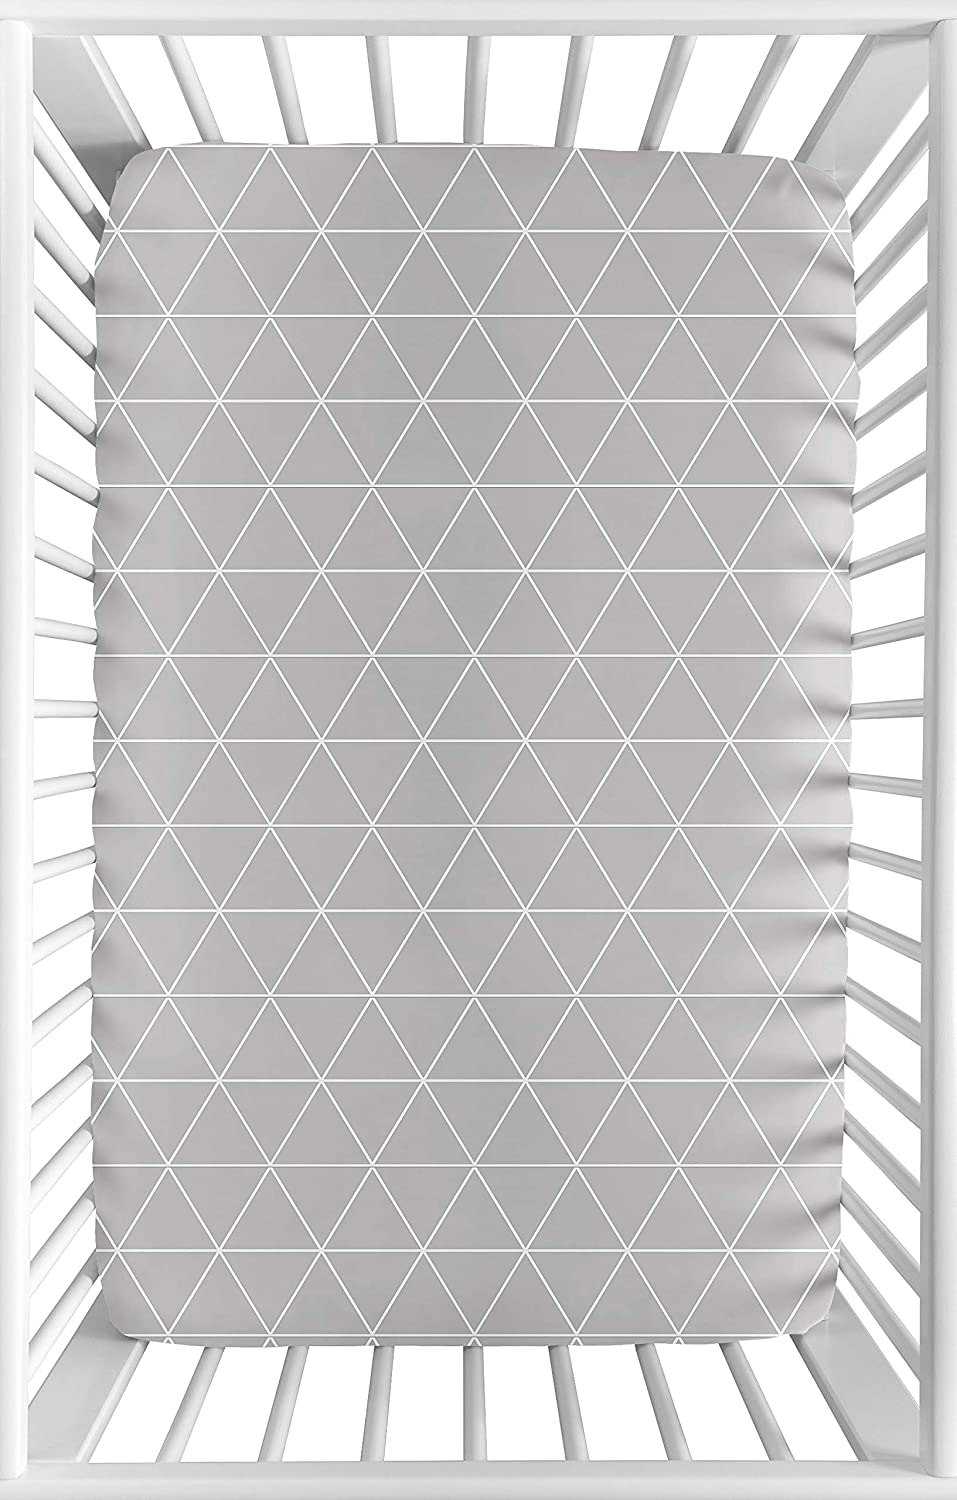 Sweet Jojo Designs Grey and White Triangle Baby Boy or Girl Unisex Fitted Mini Portable Crib Sheet for Mountains Collection - for Mini Crib or Pack and Play ONLY